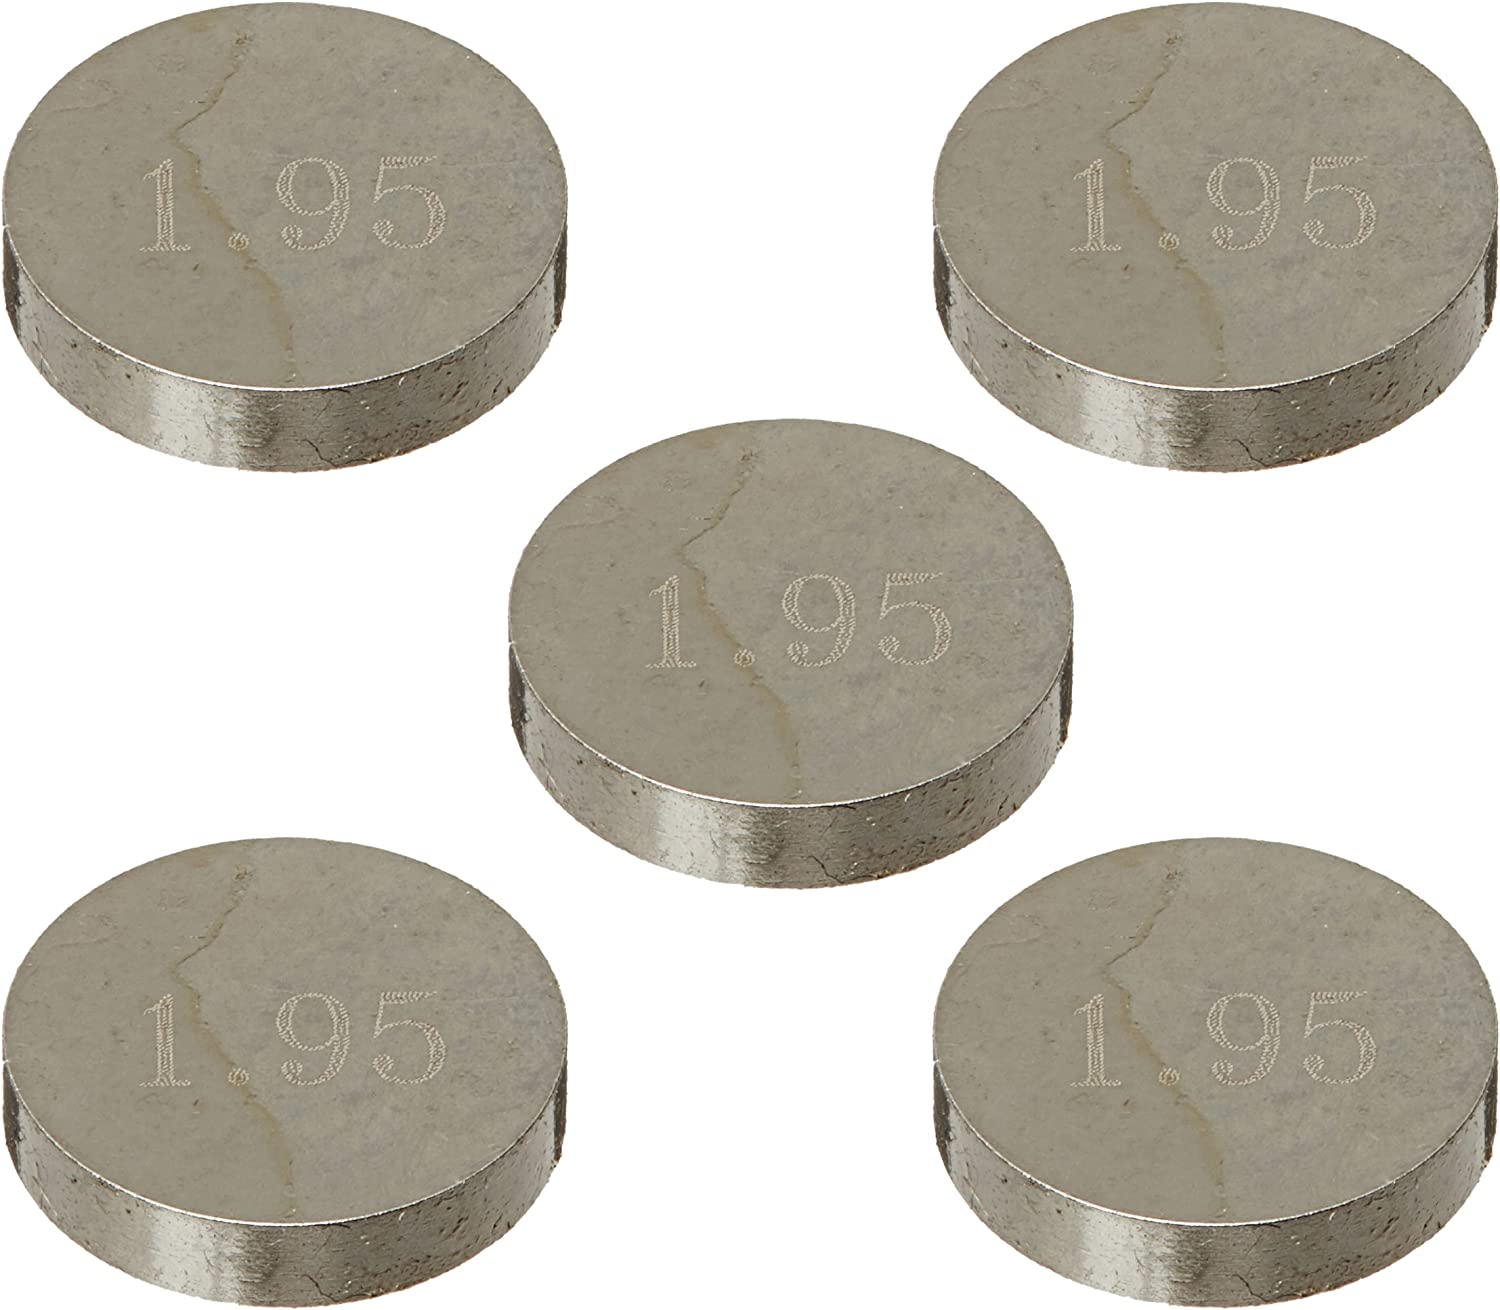 Prox Racing Parts 29.948195 9.48mm x 1.95mm Valve Shim, Pack of 5